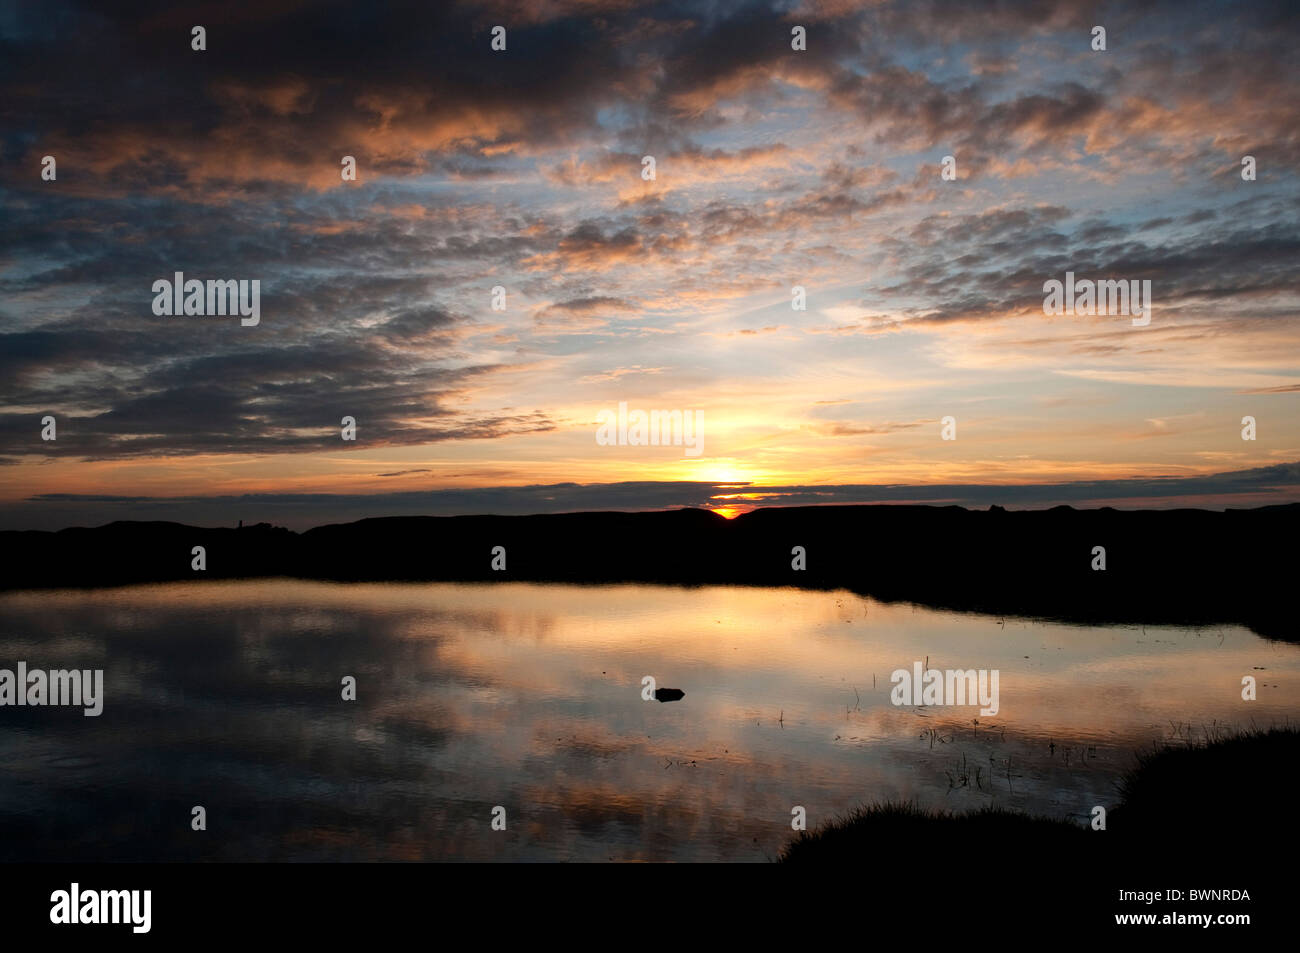 Reflections of sunset and clouds in water of pond on Dartmoor, Devon UK - Stock Image